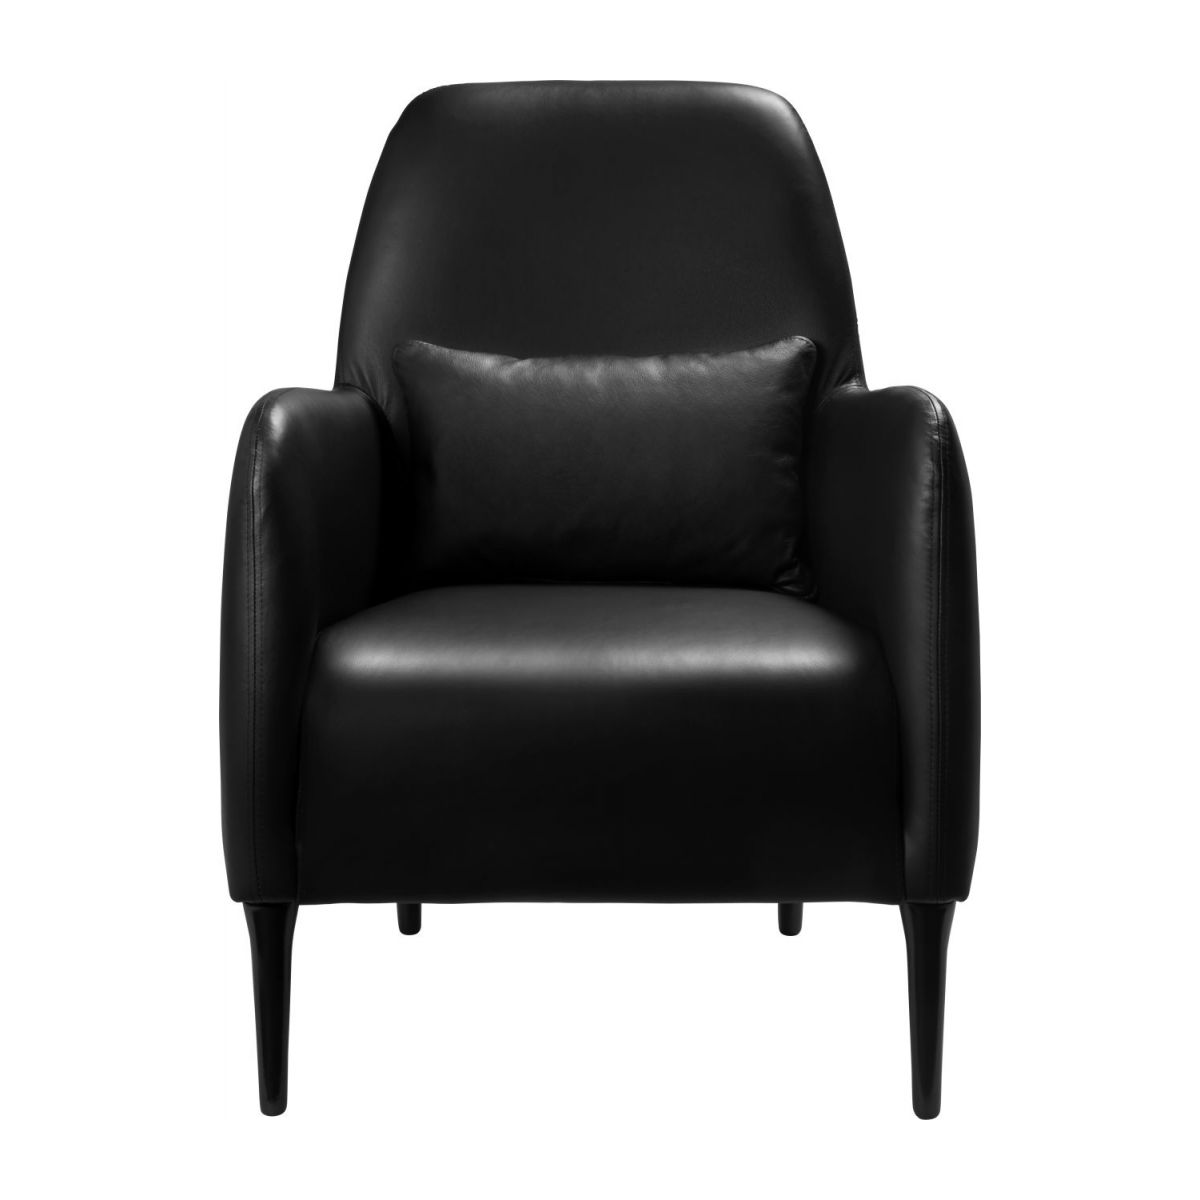 Leather armchair n°2